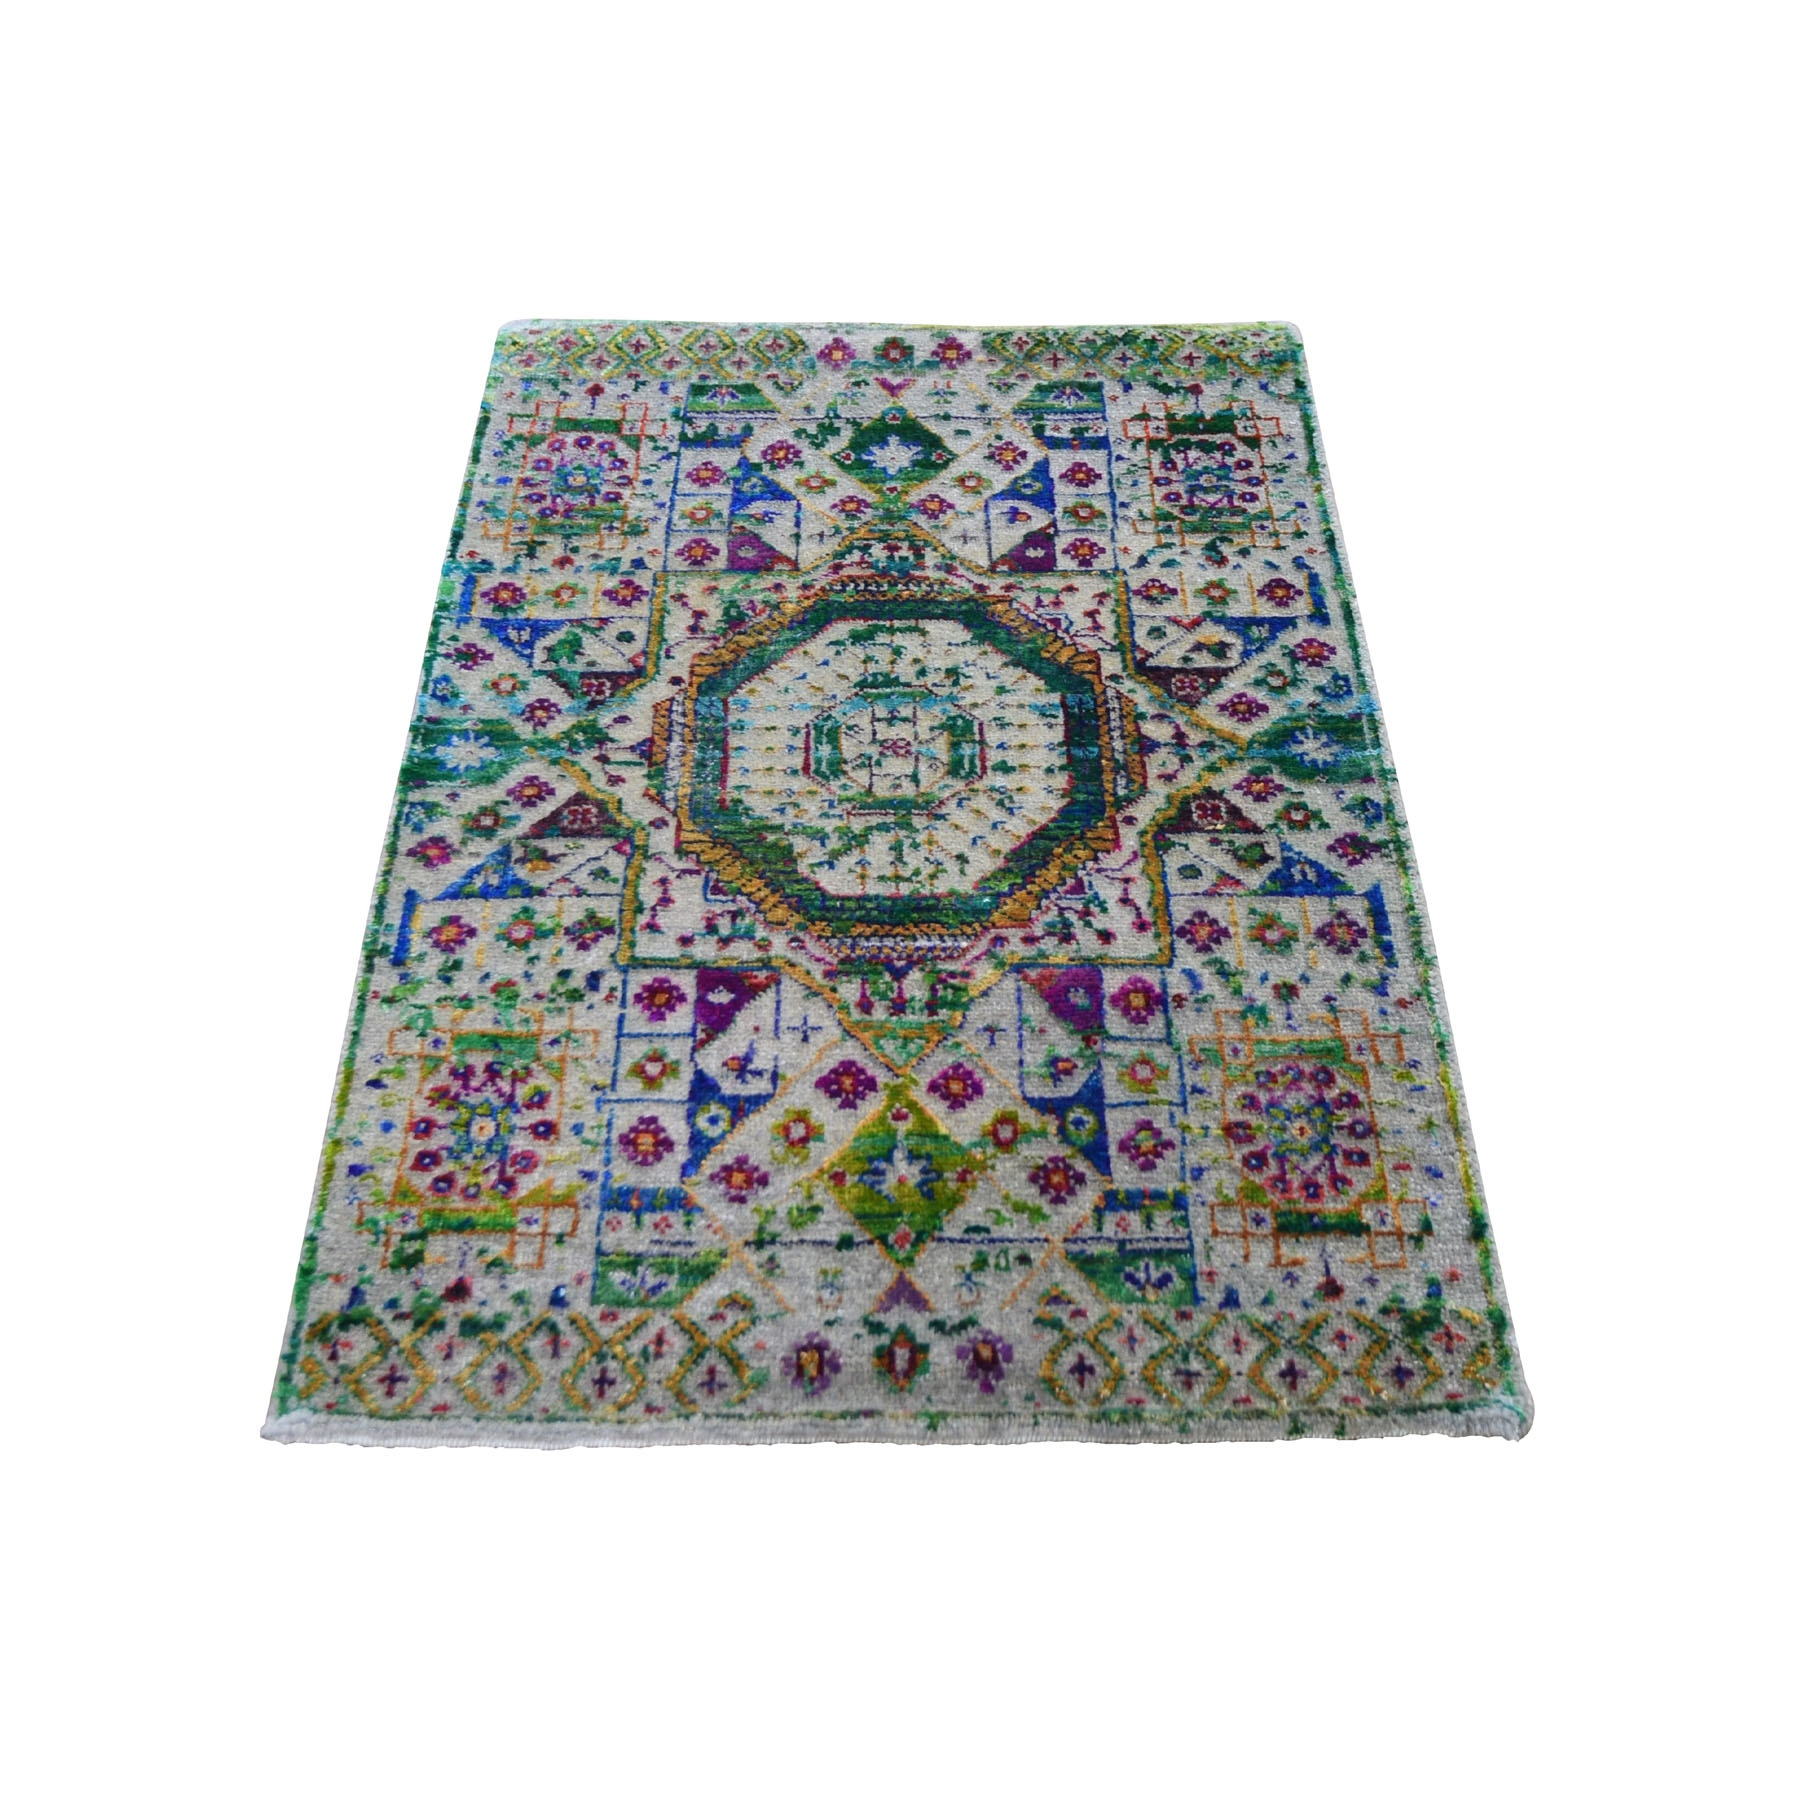 Intricate Collection Hand Knotted Green Rug No: 0197980